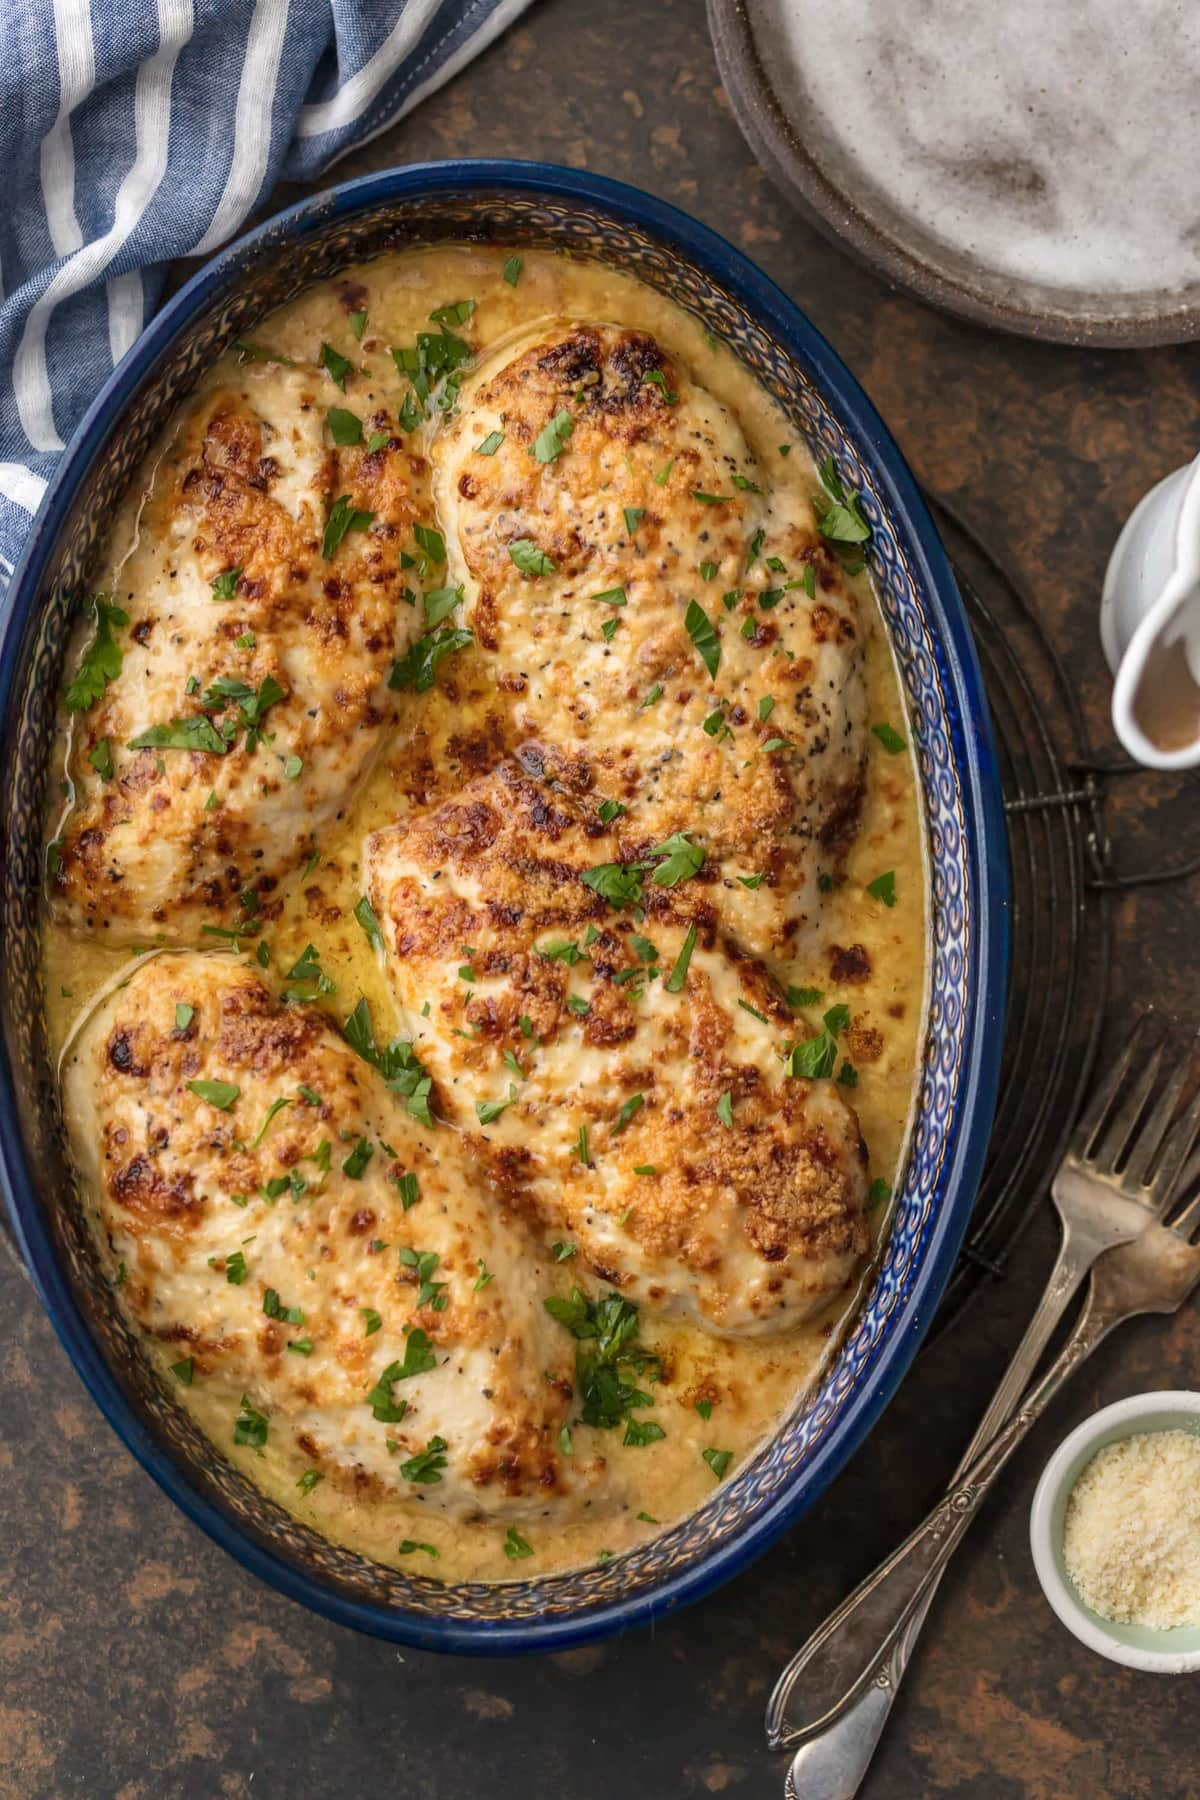 baked chicken in a creamy sauce